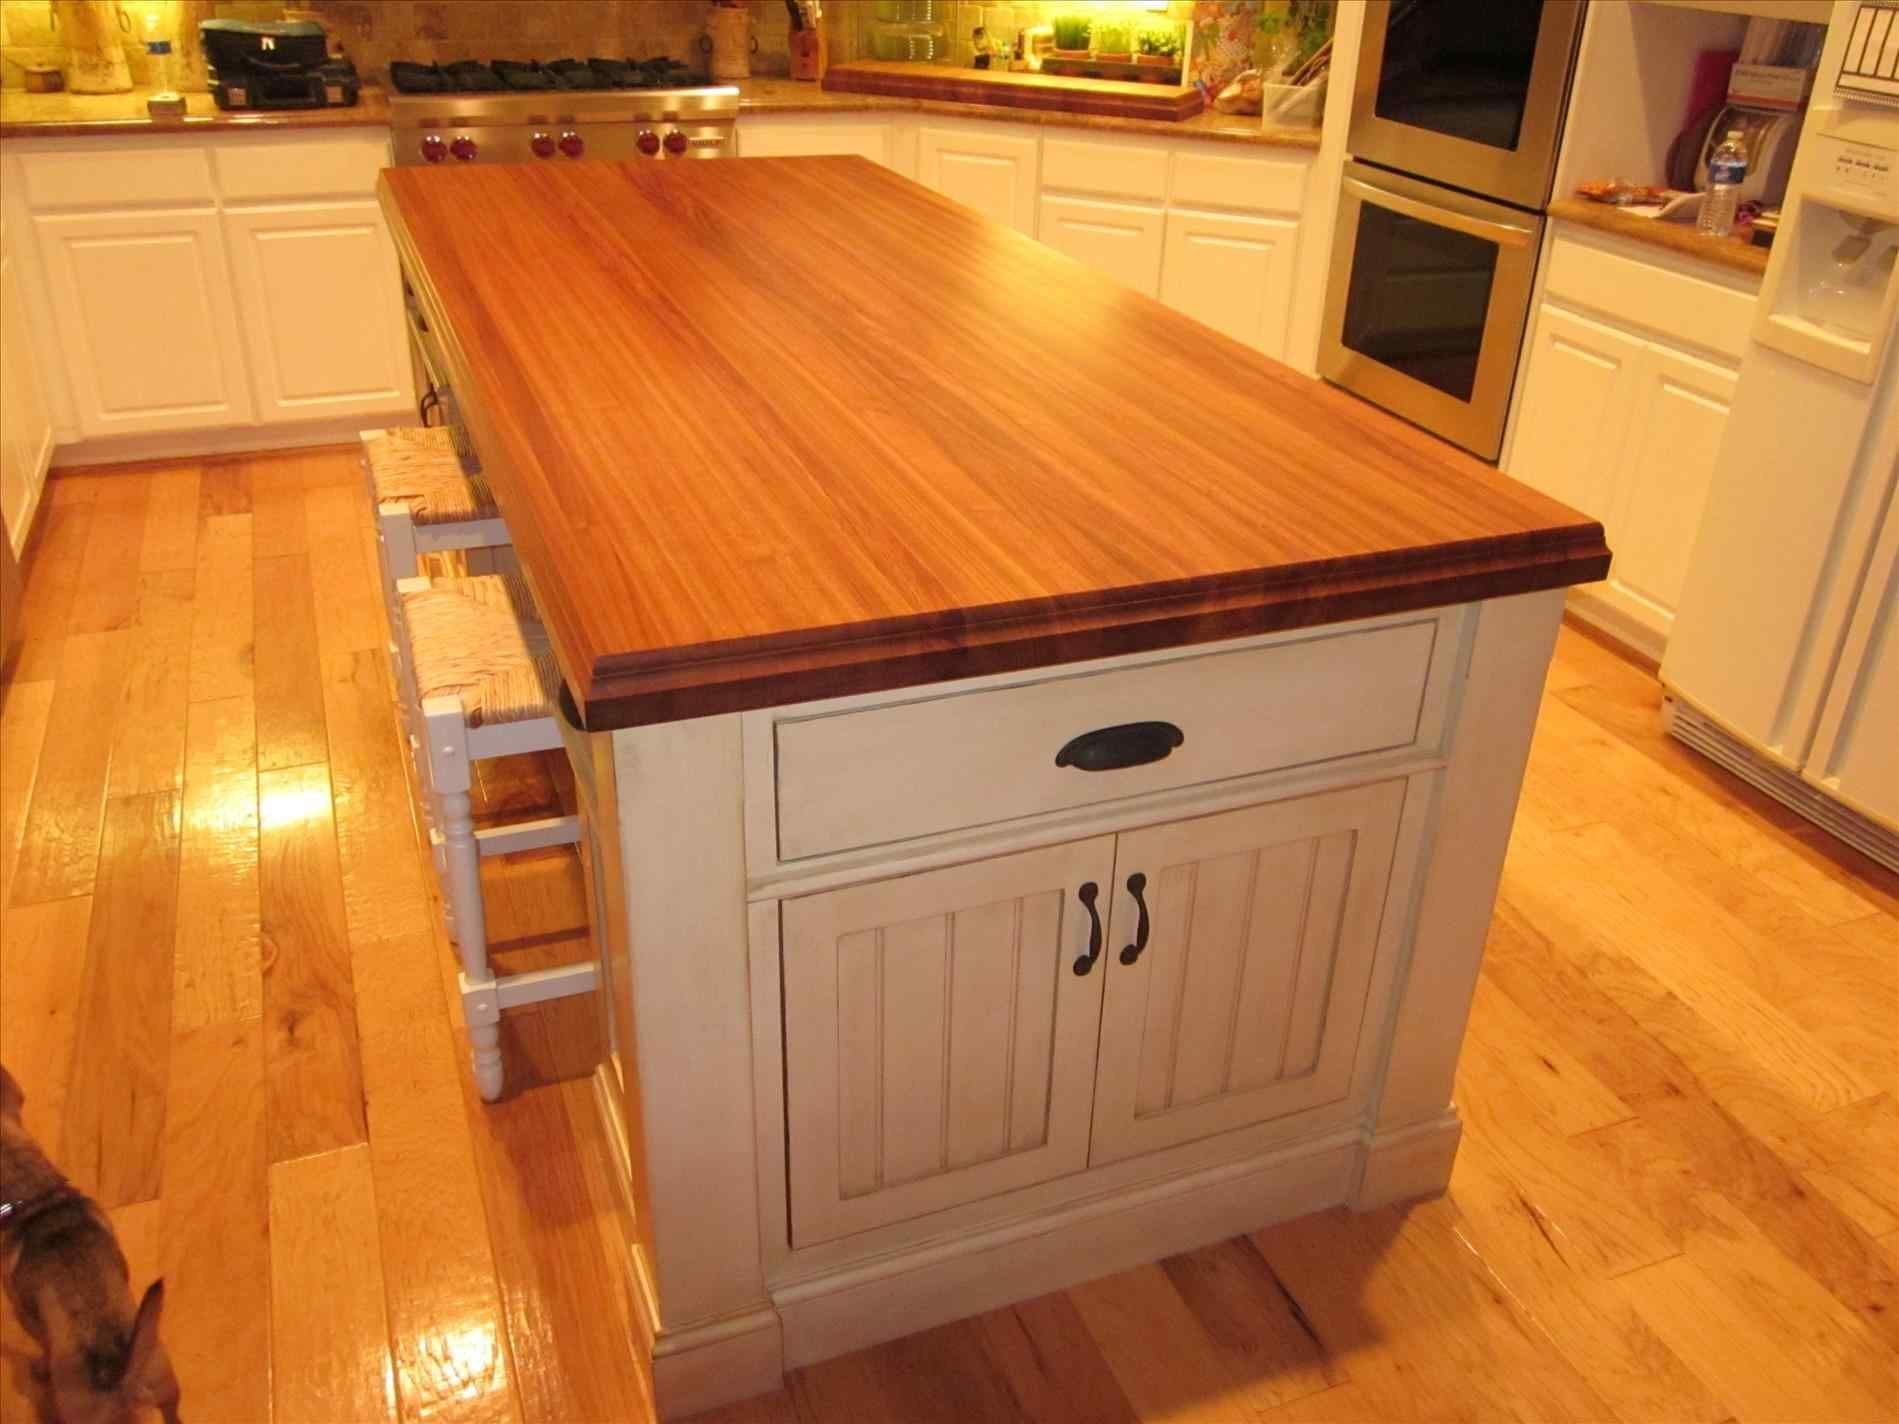 New rolling kitchen island with butcher block top at